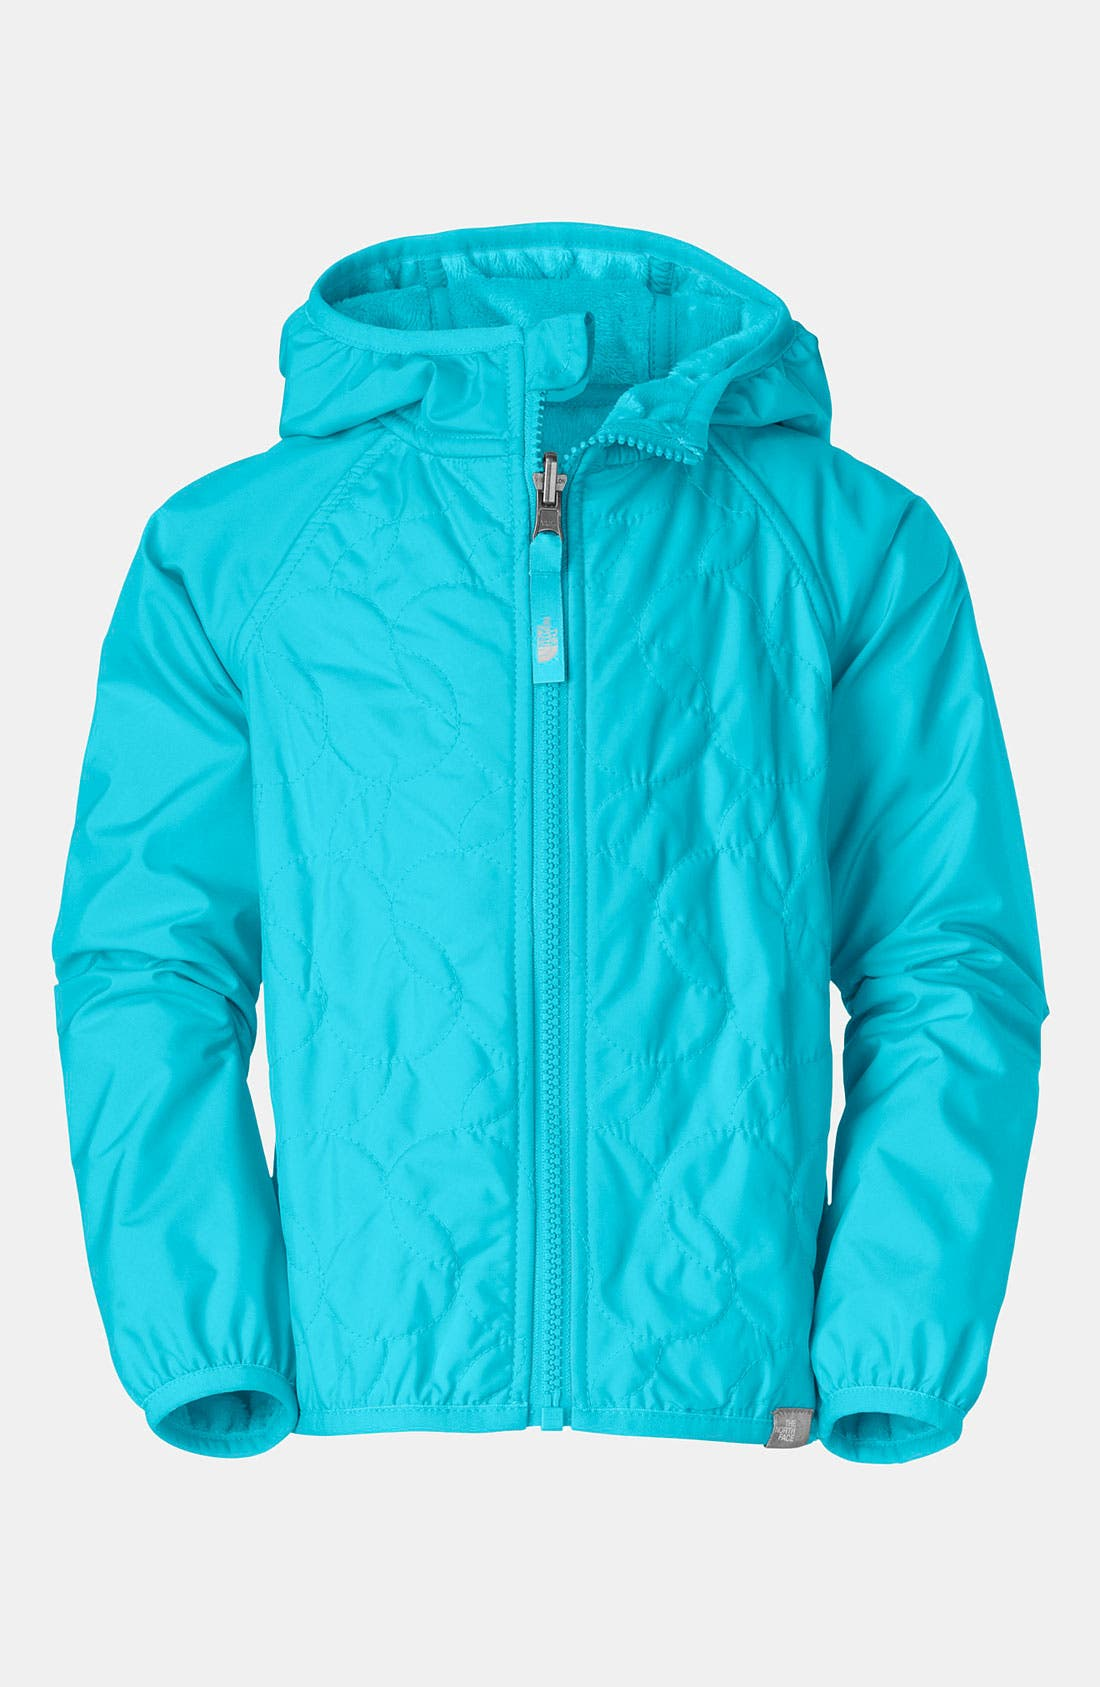 Alternate Image 1 Selected - The North Face 'Lil Breeze' Reversible Jacket (Toddler Girls)